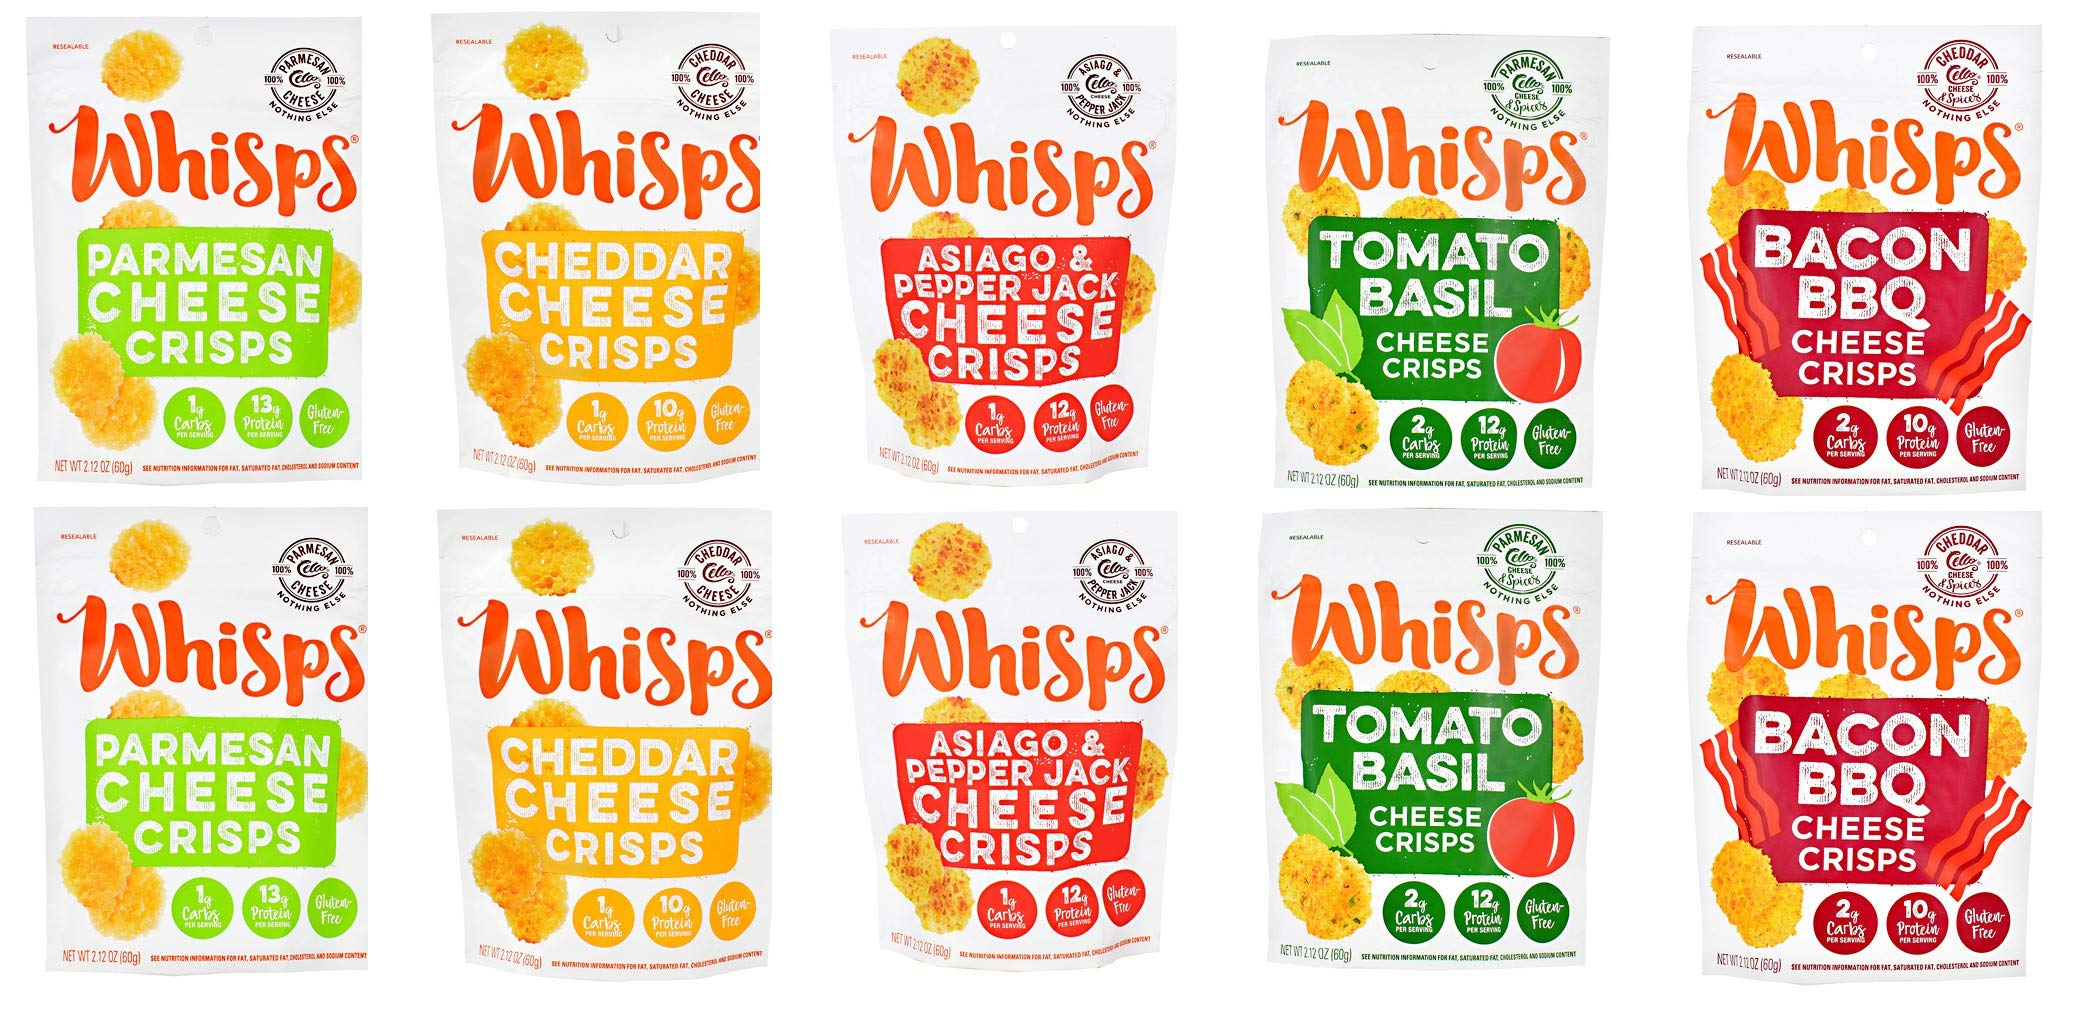 Whisps Cheese Crisps 10 Bag Variety Pack Cheddar Tomato Basil BBQ Bacon Asiago Pepper Jack Parmesean Cheese Crisps KETO FRIENDLY LOW CARB ONLY 300 CALORIES PER BAG